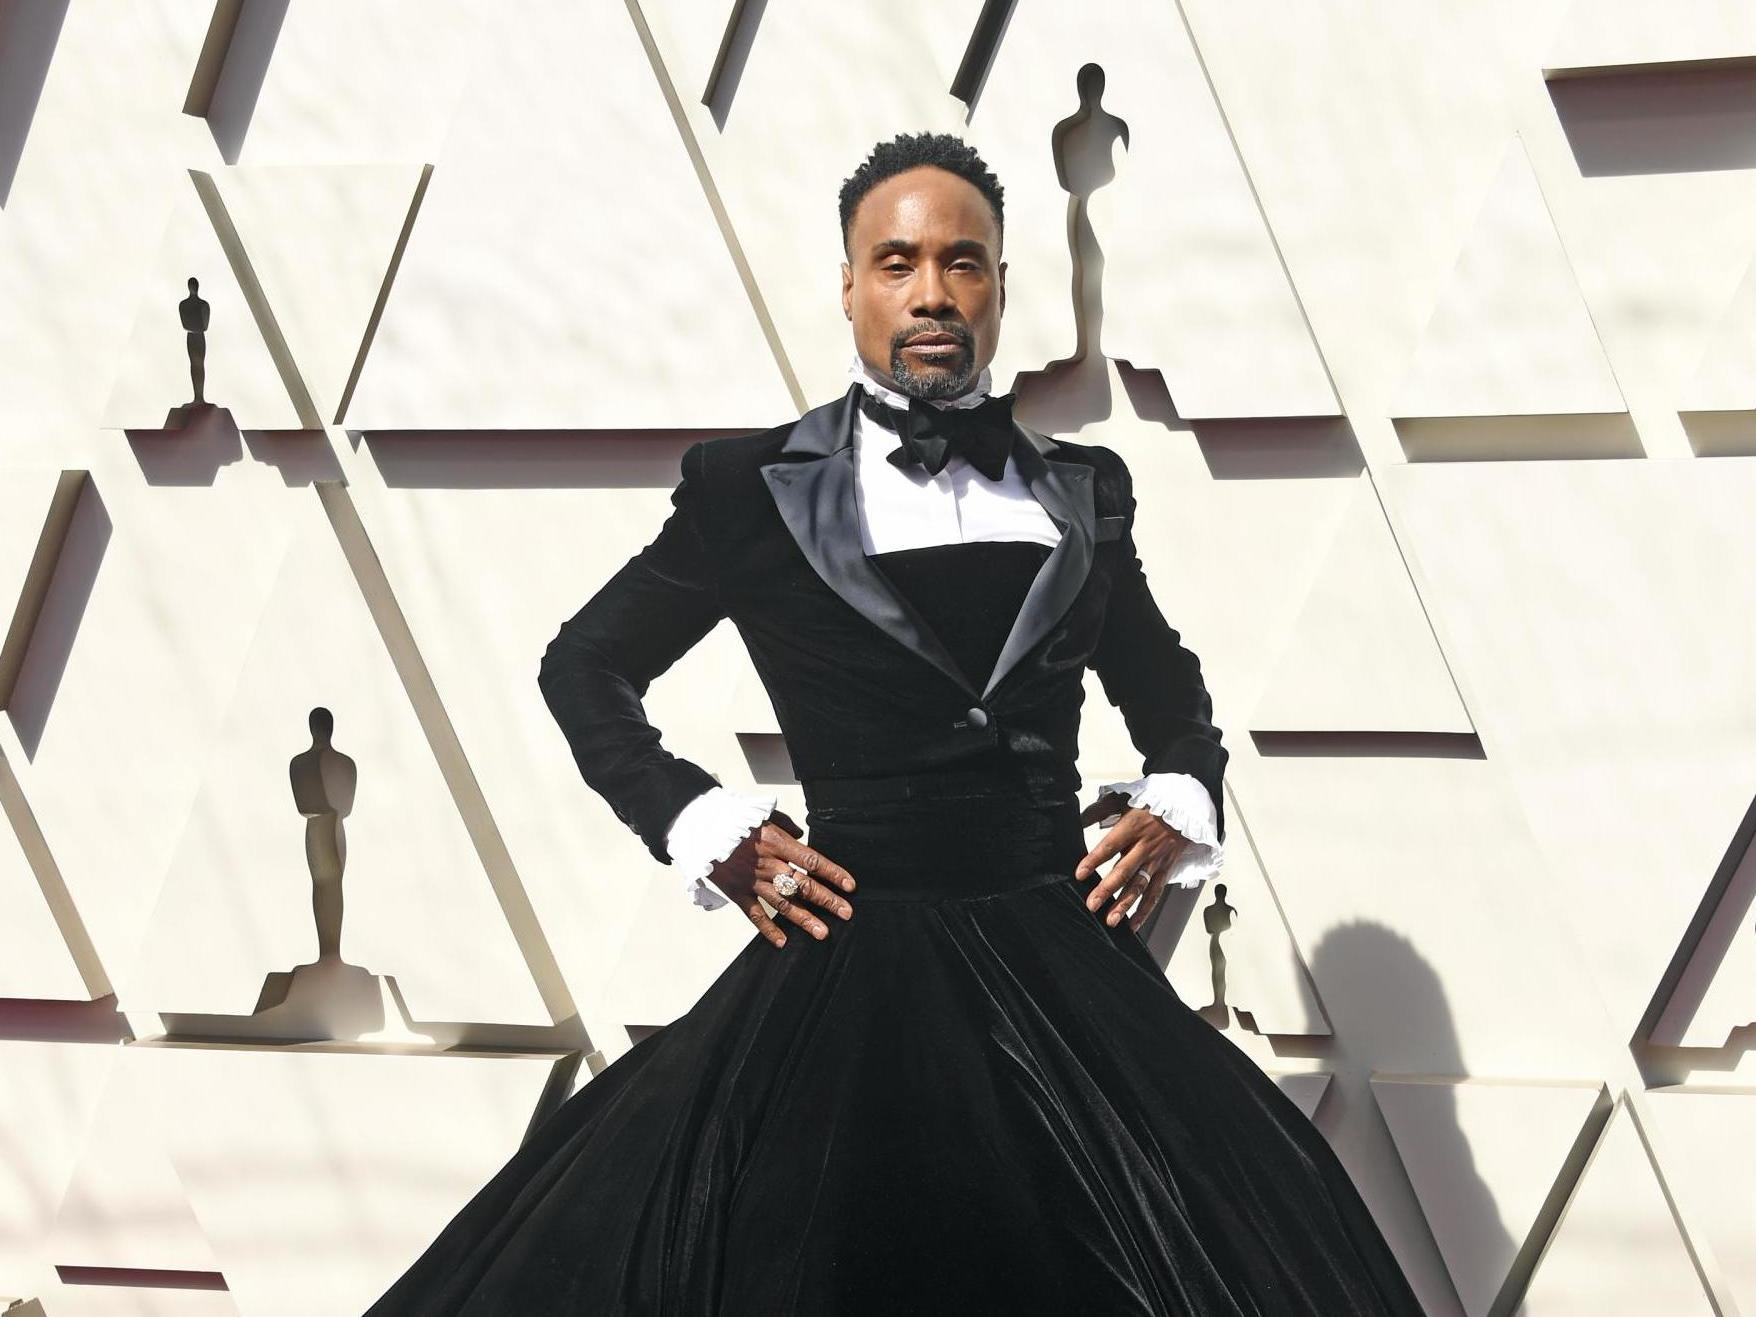 8 - Billy Porter's Oscars dress, Christian Siriano, 2018